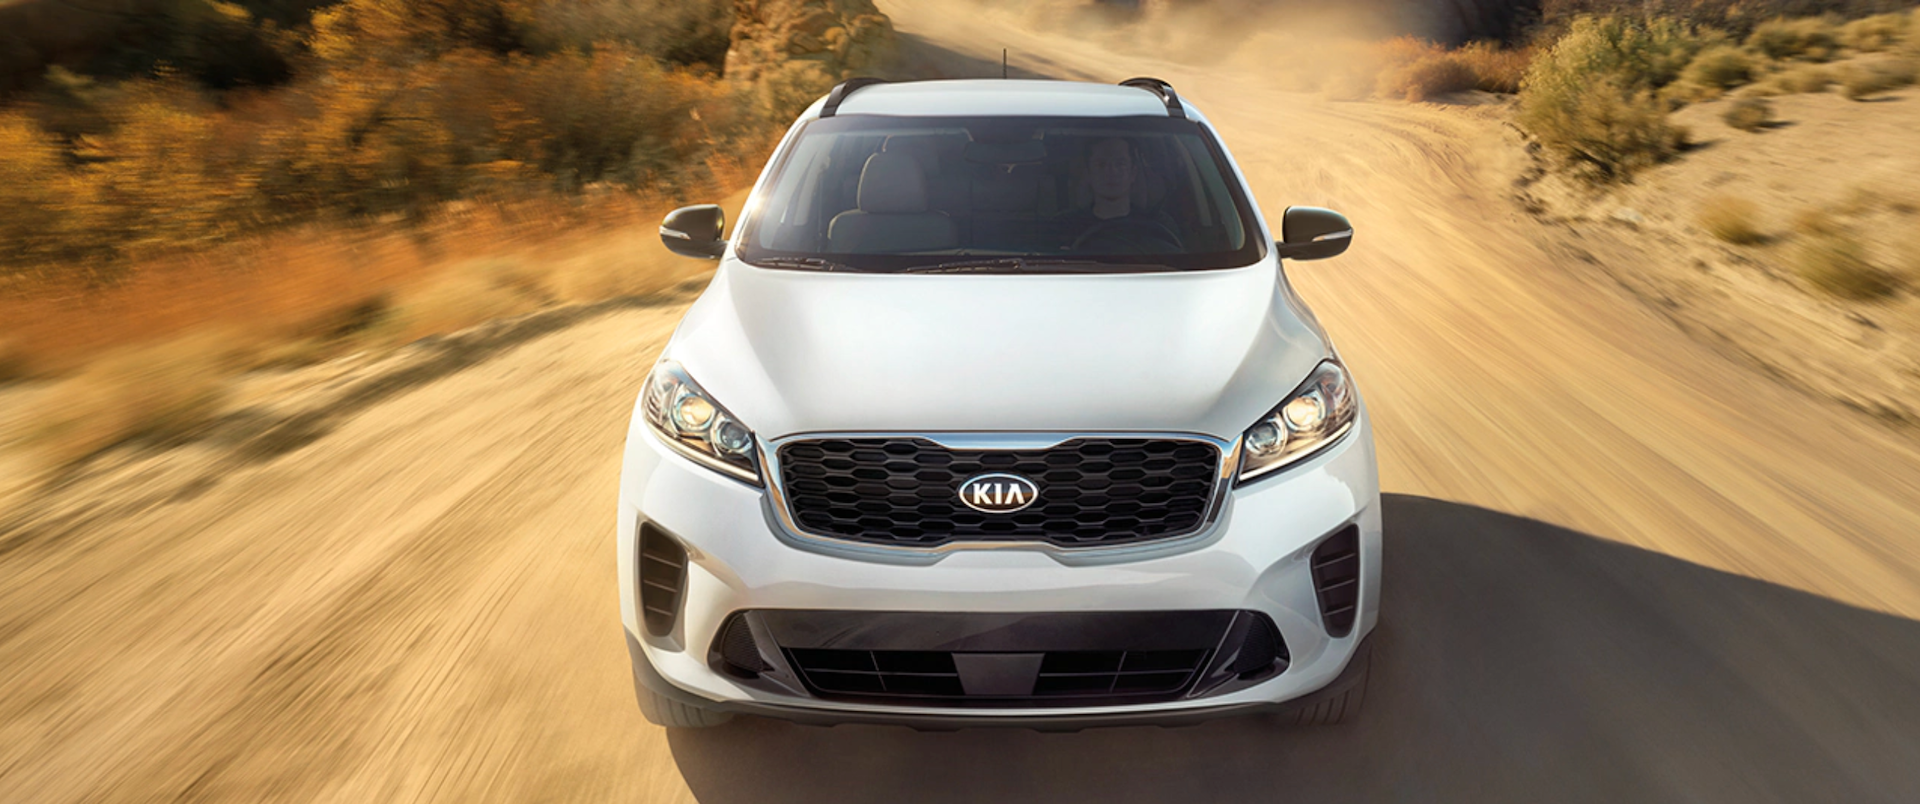 Kia Sorento Exterior Features